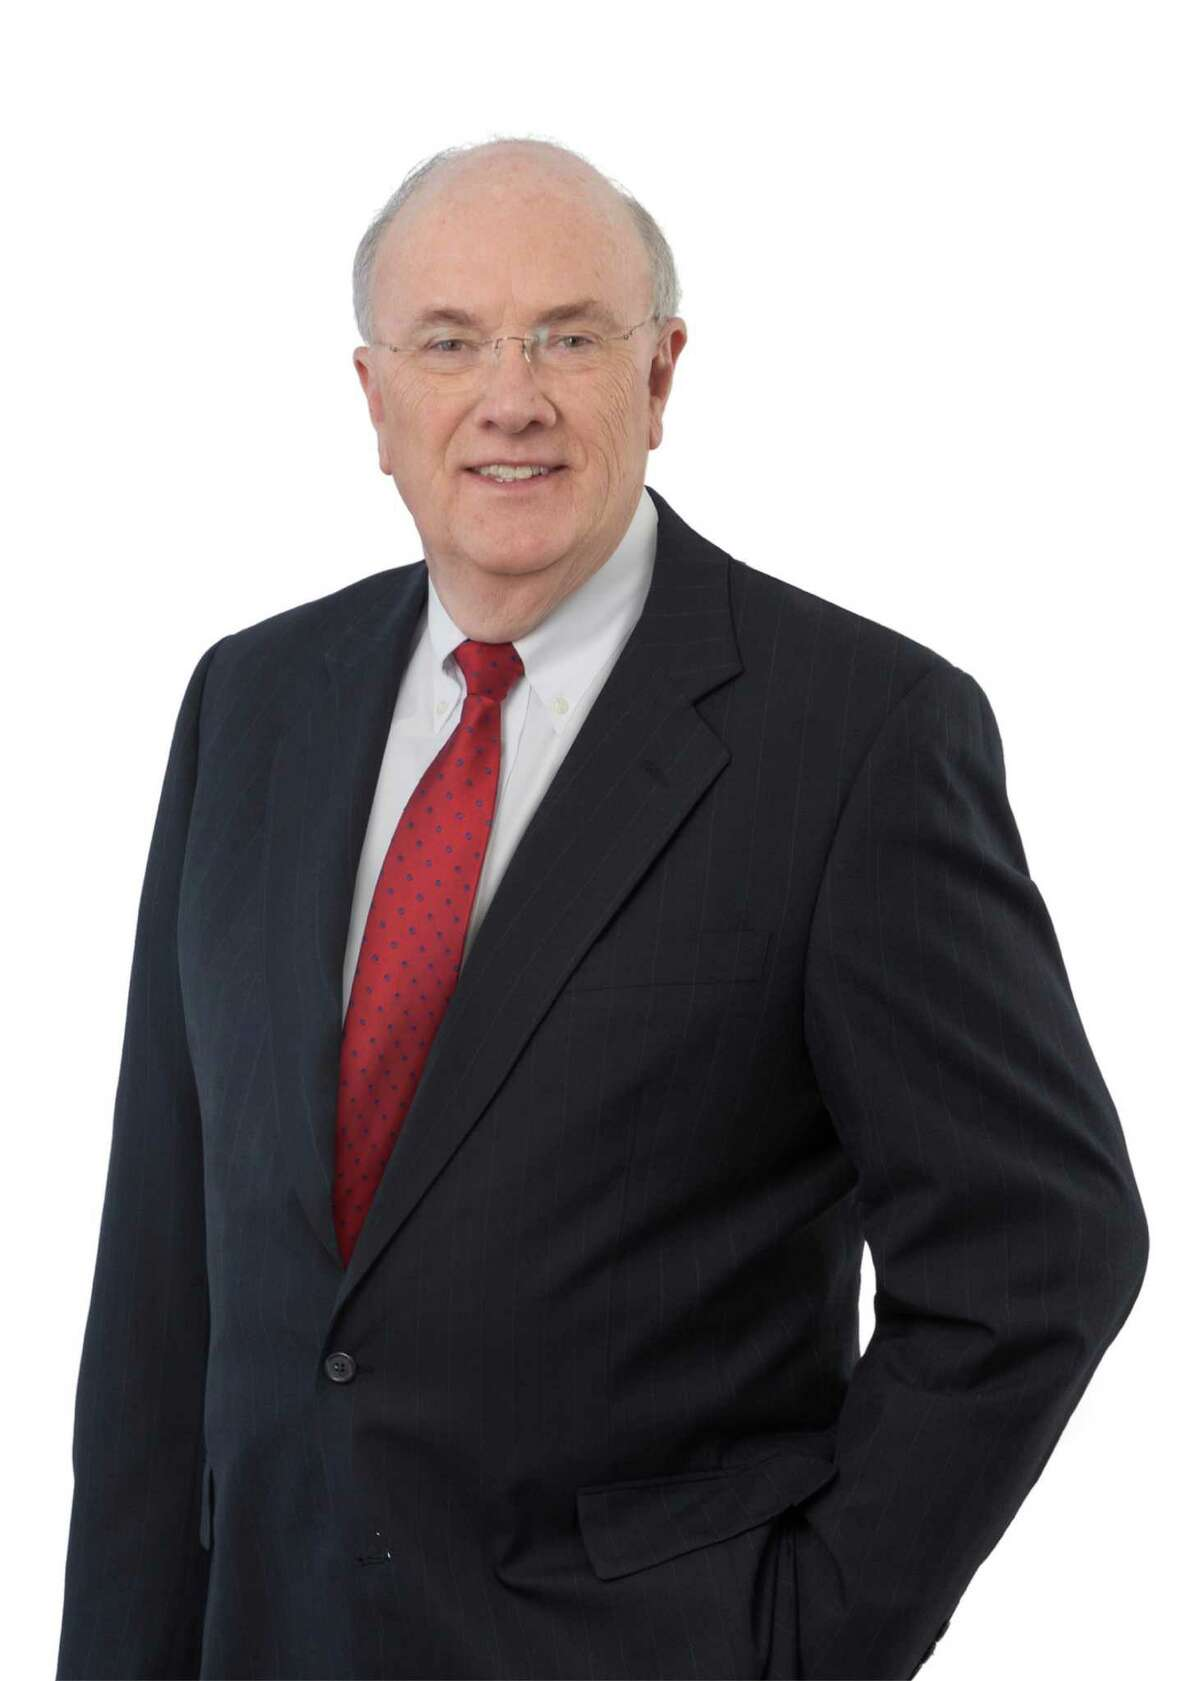 Keith Short has joined Coats Rose as of counsel in the firm's real estate practice group.